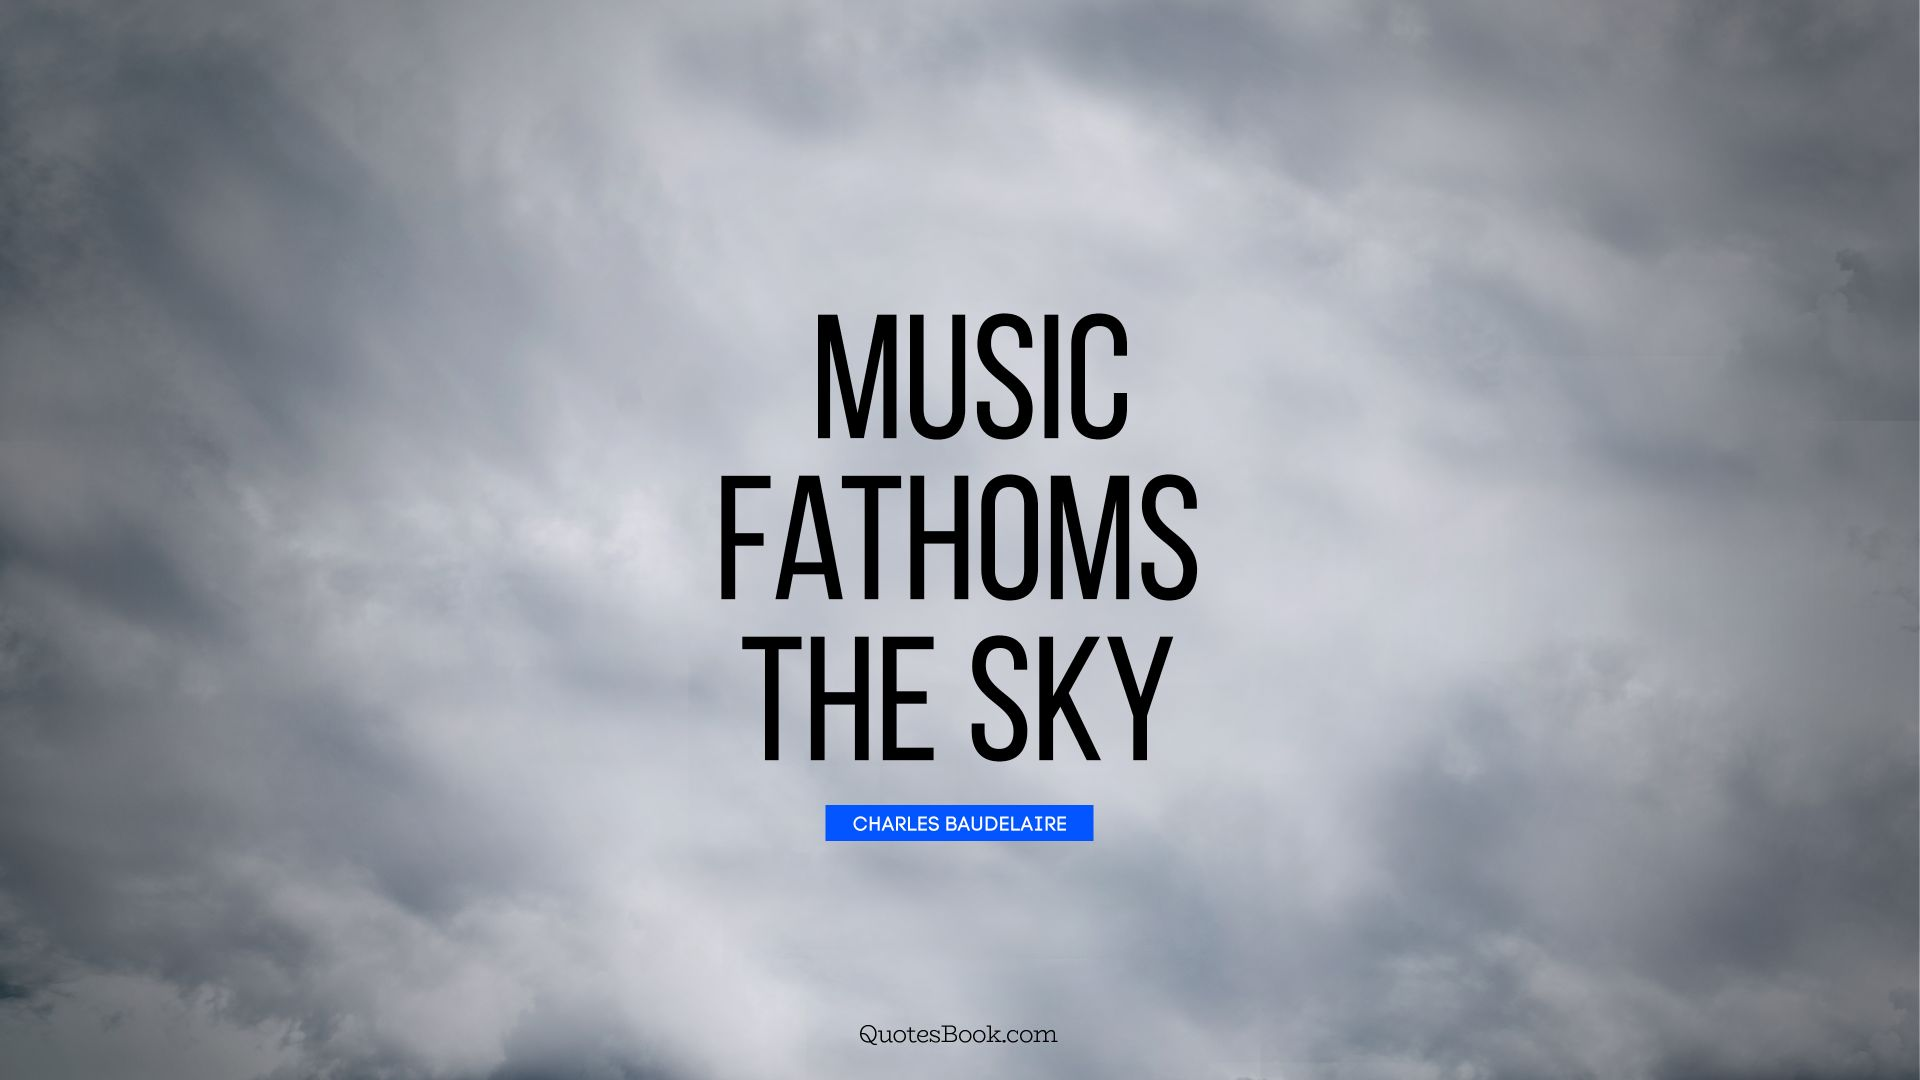 Music fathoms the sky. - Quote by Charles Baudelaire